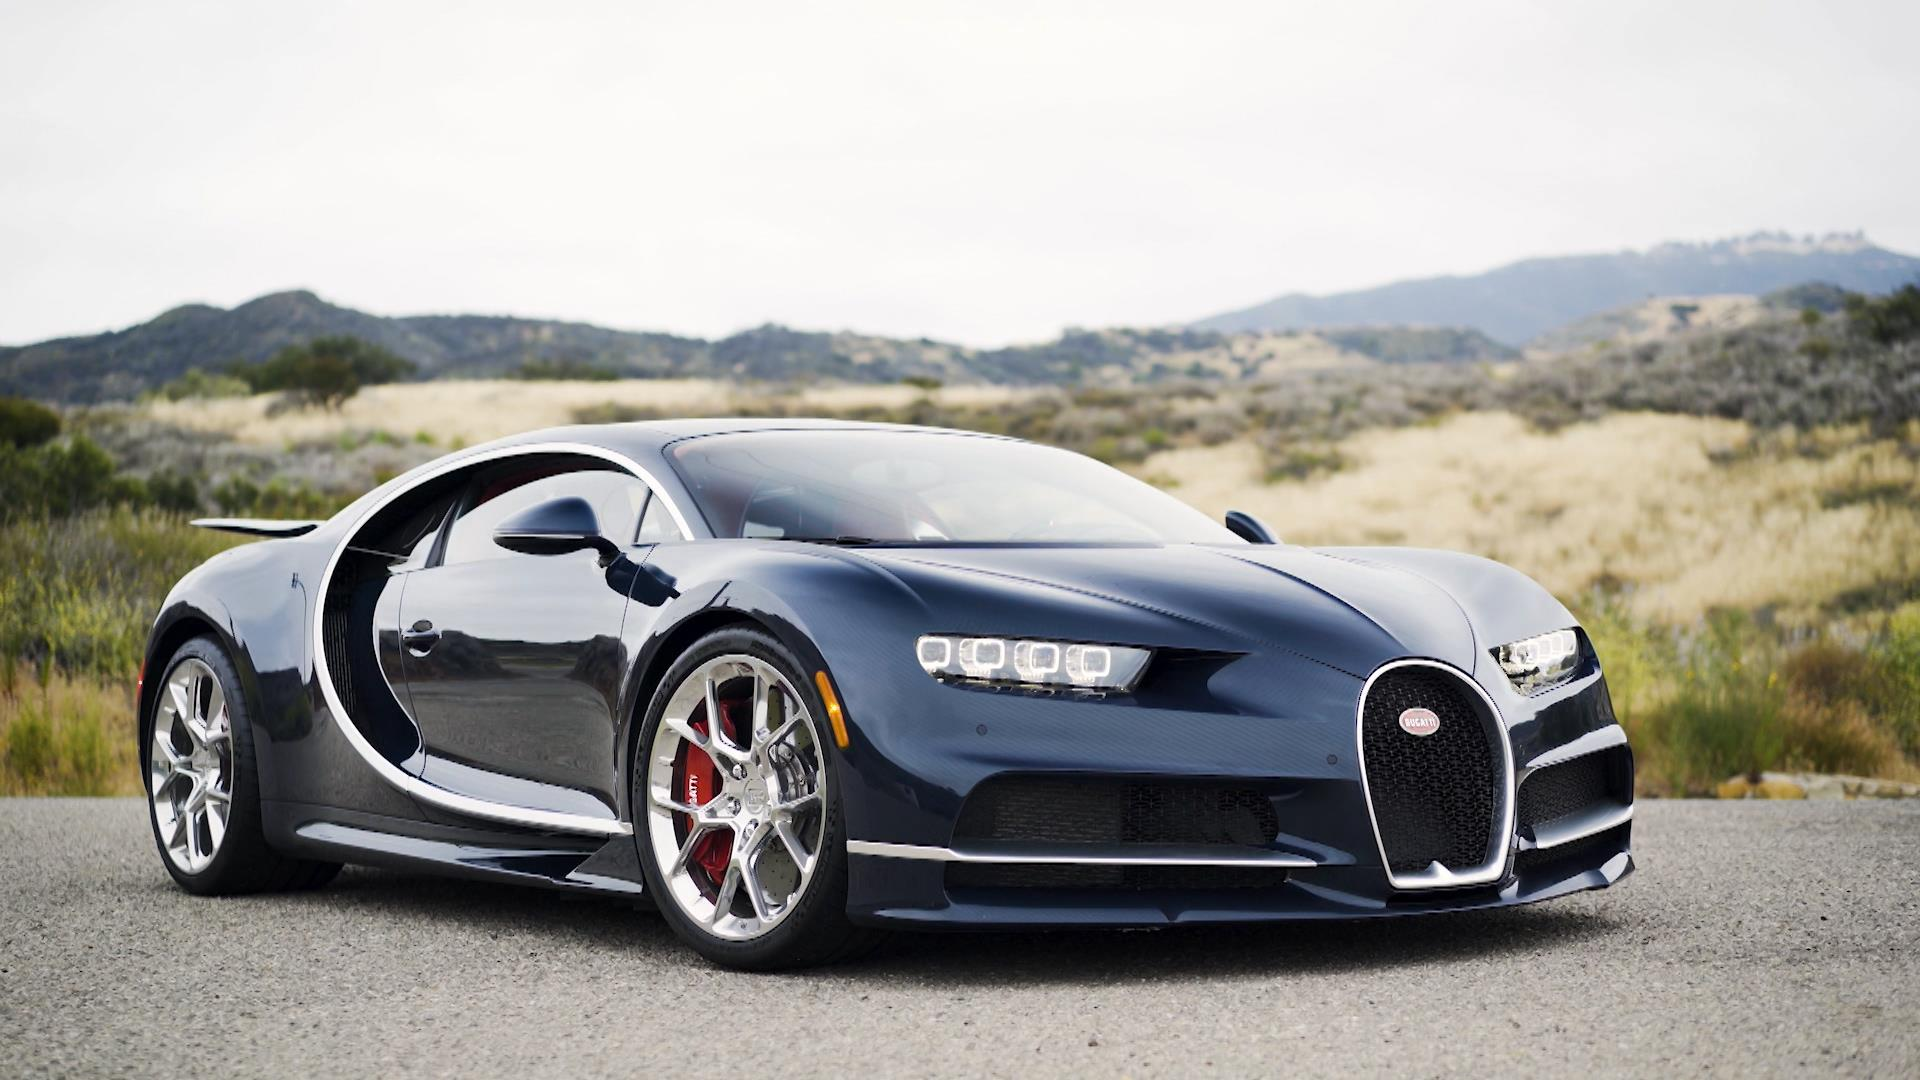 Behind The Wheel of A Bugatti Chiron, One of The Fastest ...